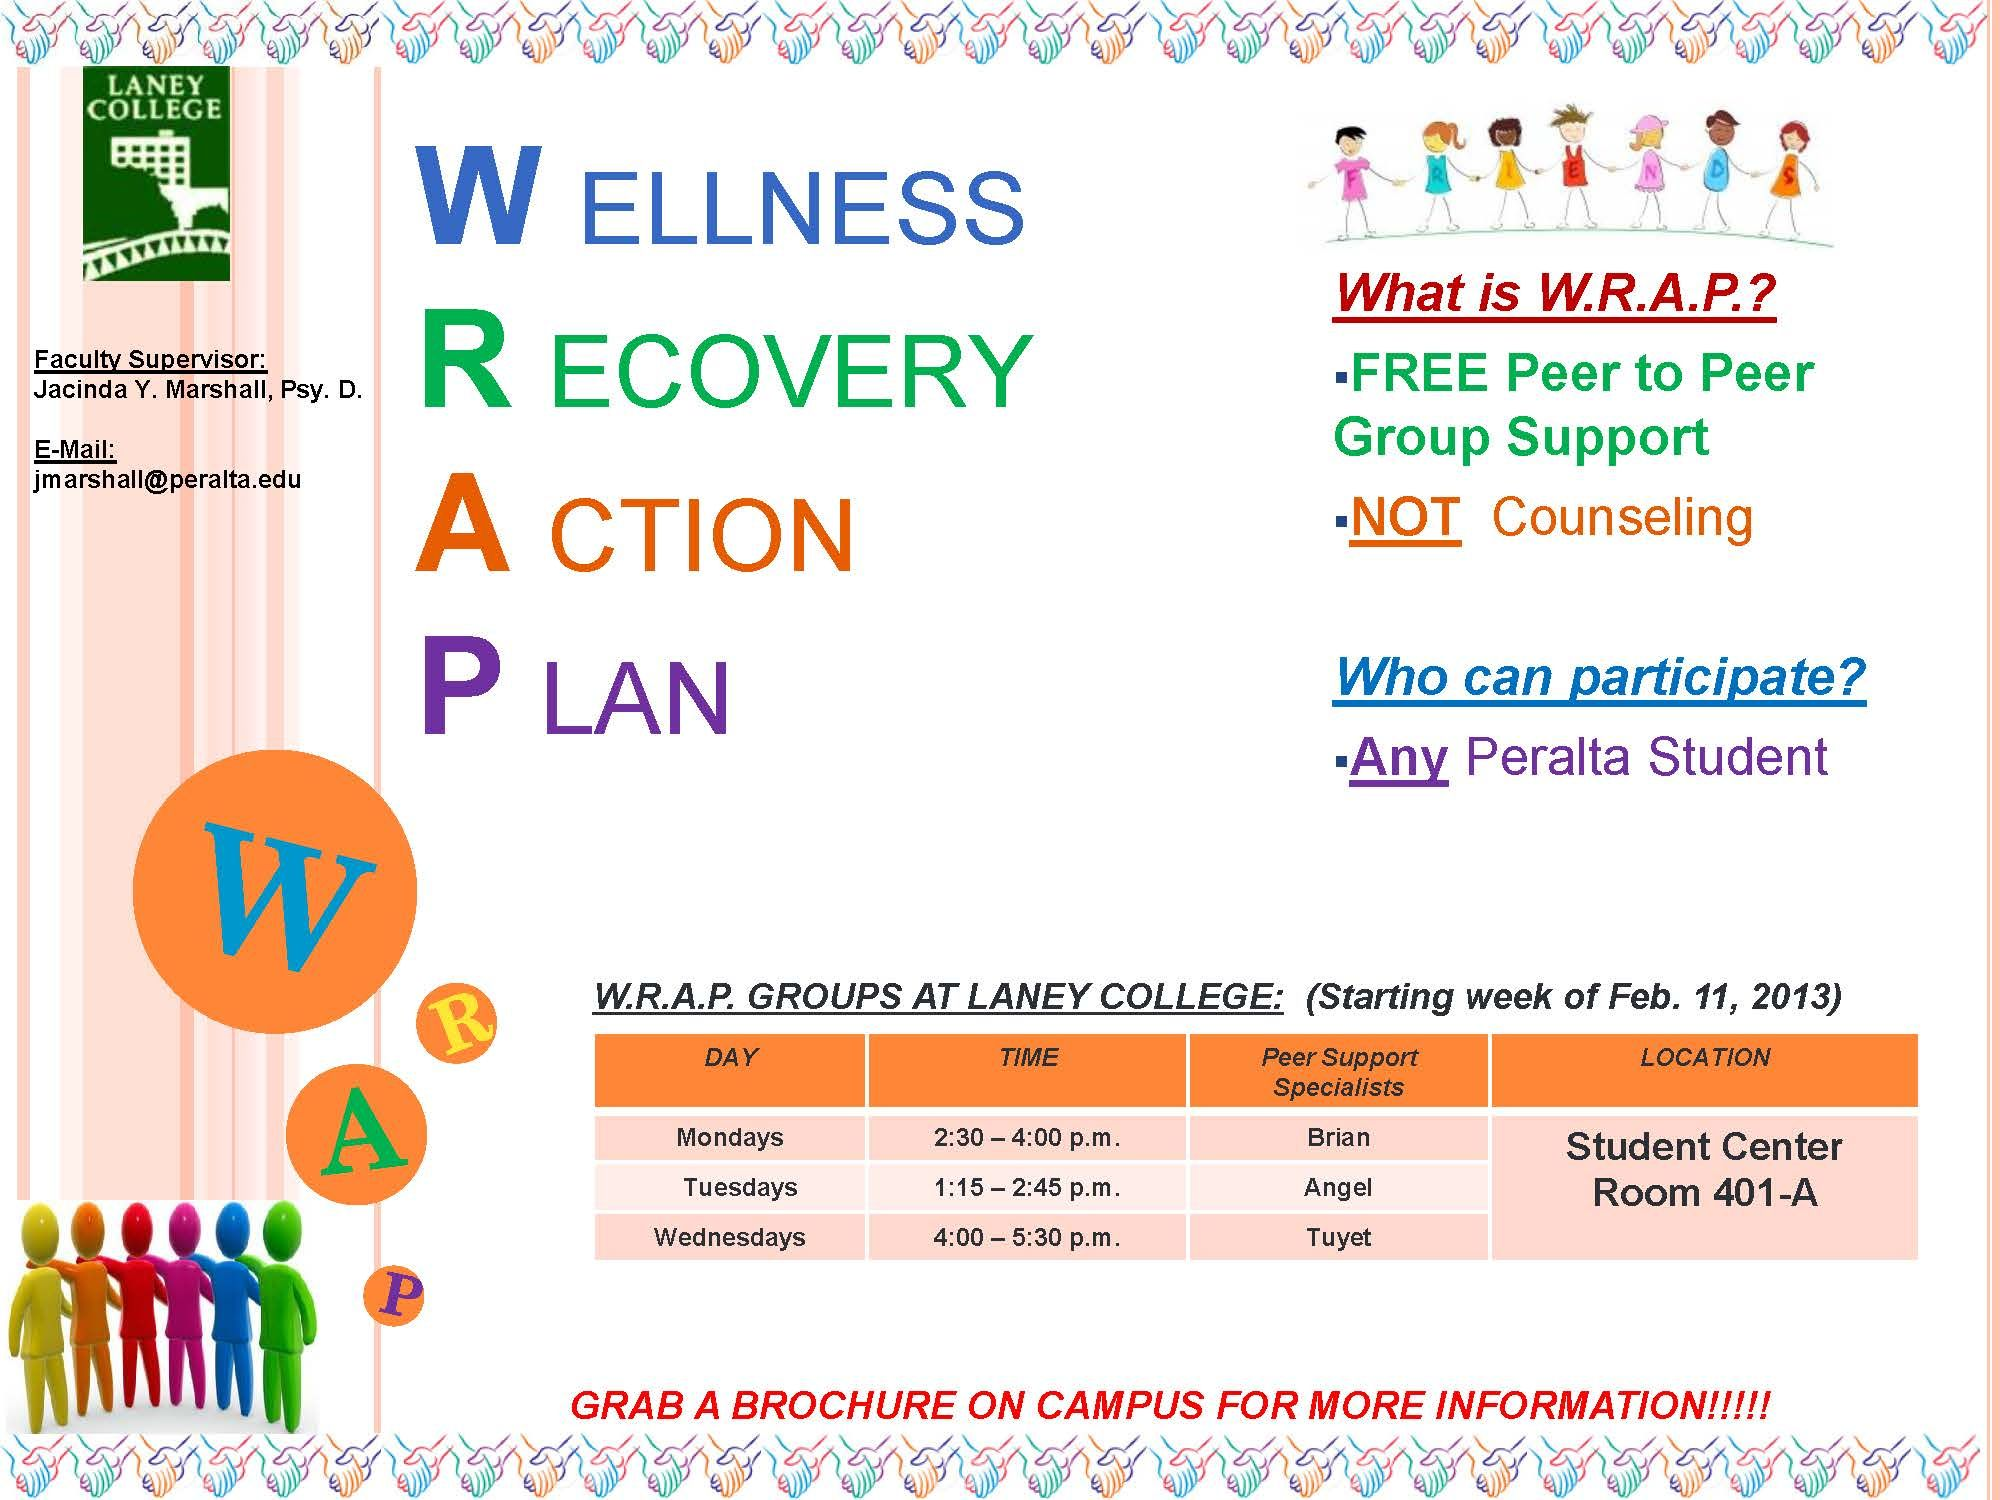 Sample Wrap Wellness Recovery Action Plan Images